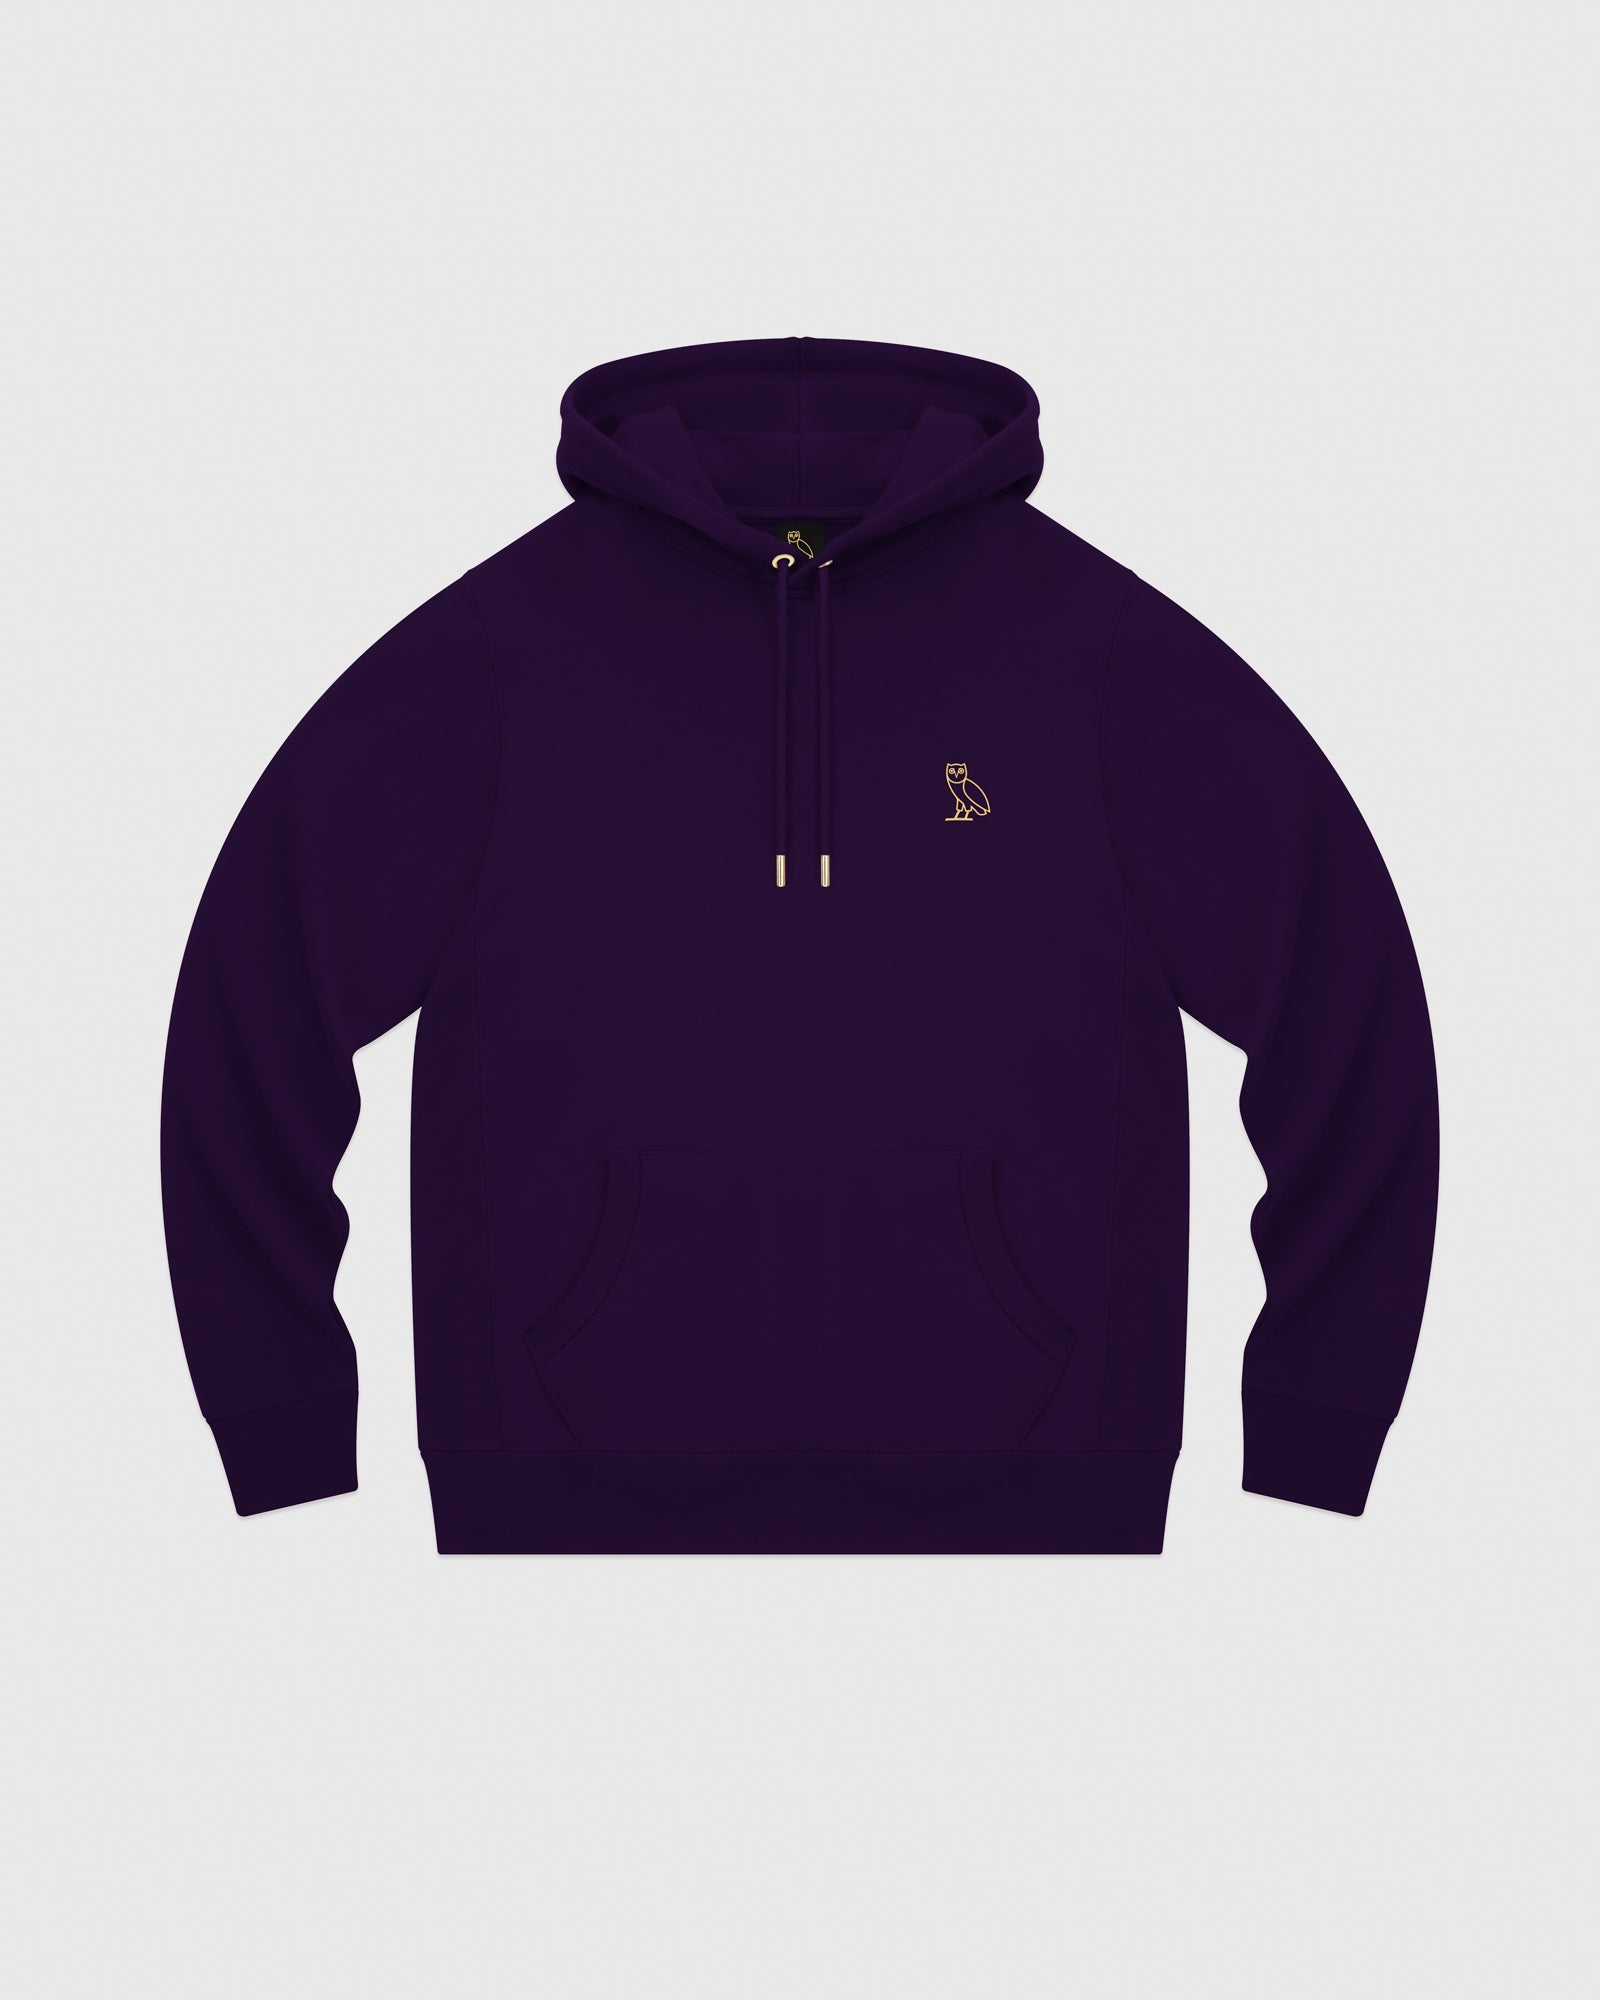 MID-WEIGHT FRENCH TERRY HOODIE - PURPLE